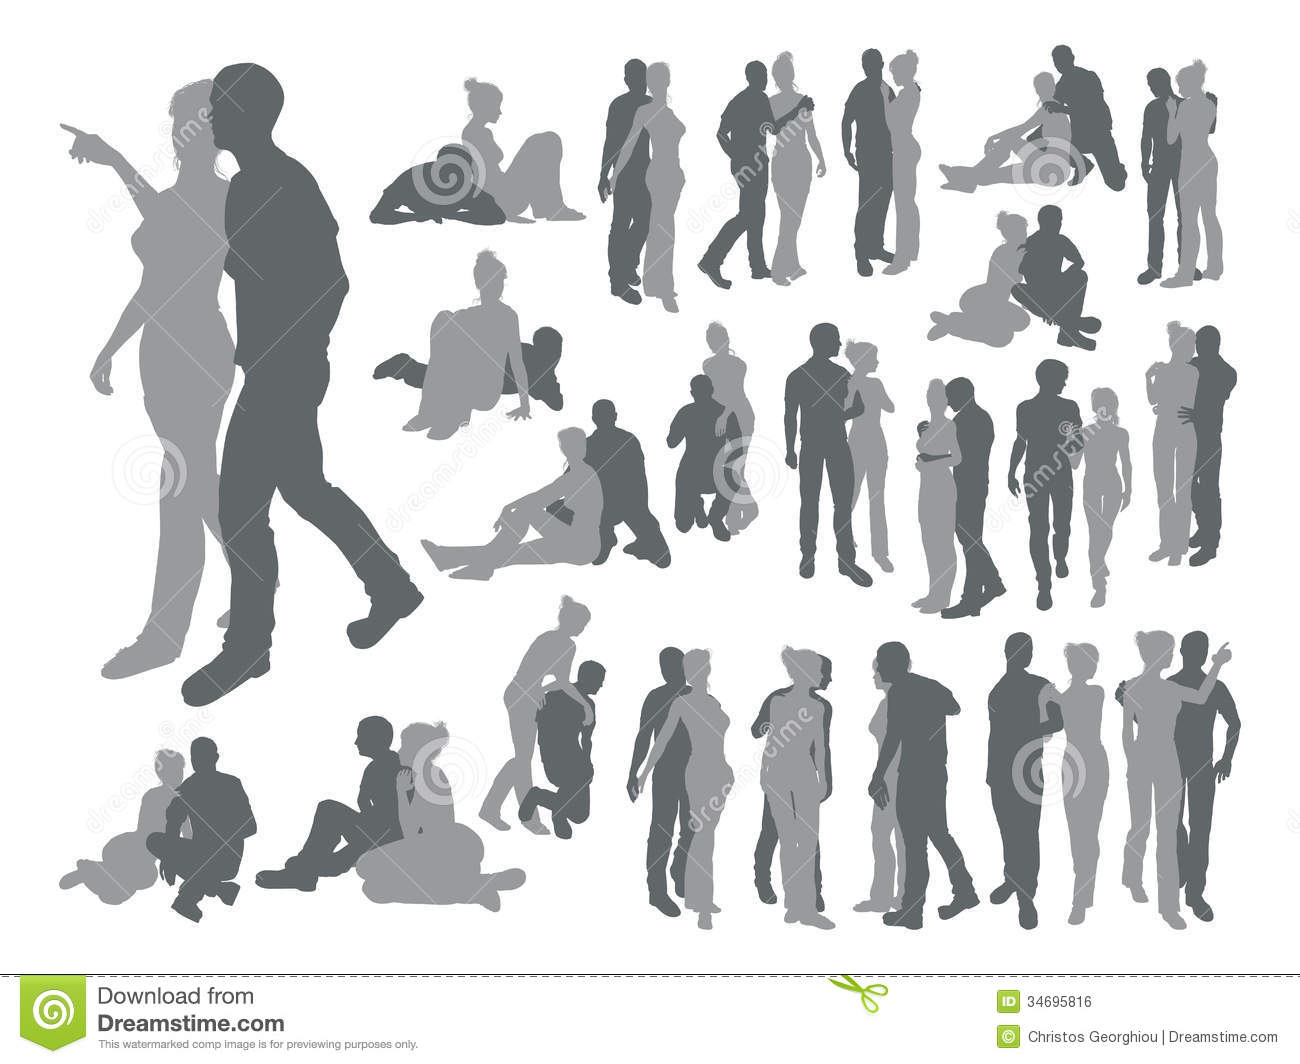 Highly Detailed Couple Silhouettes Royalty Free Stock Image - Image 34695816-7662